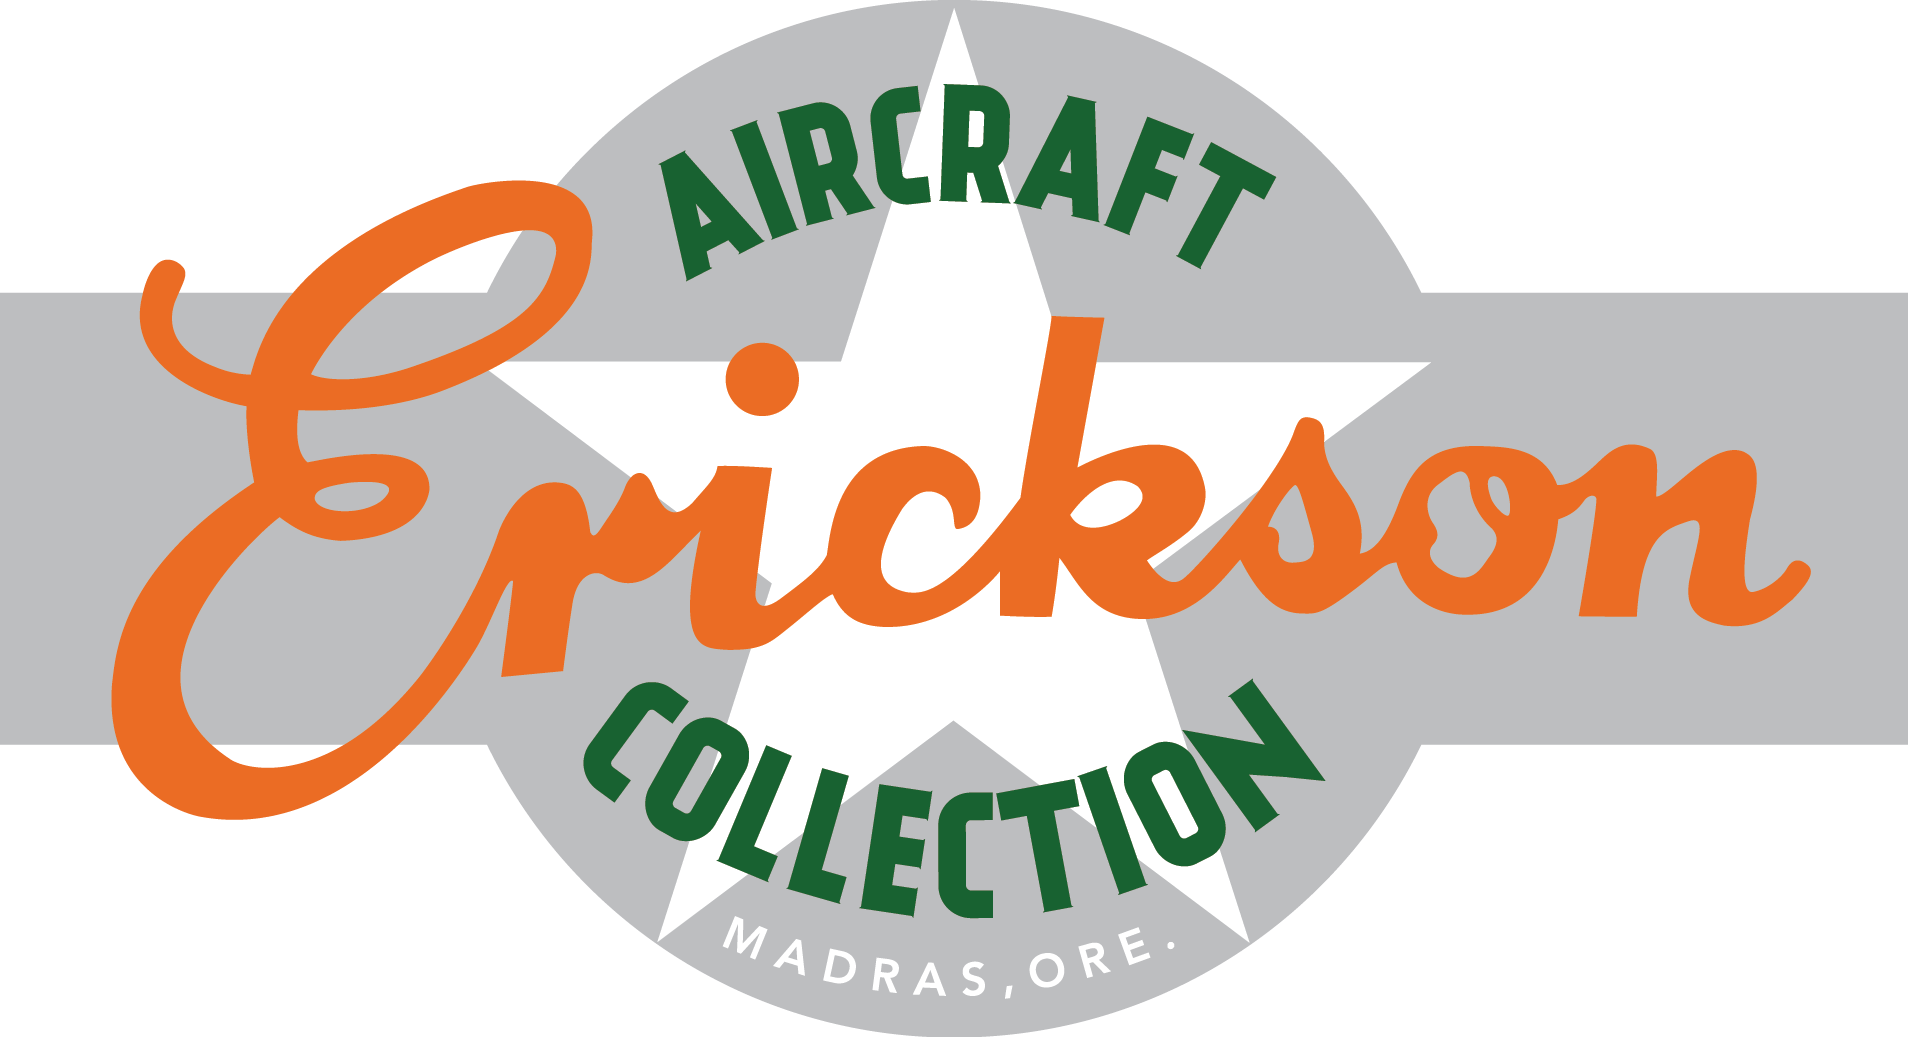 Erickson Logo Sticker